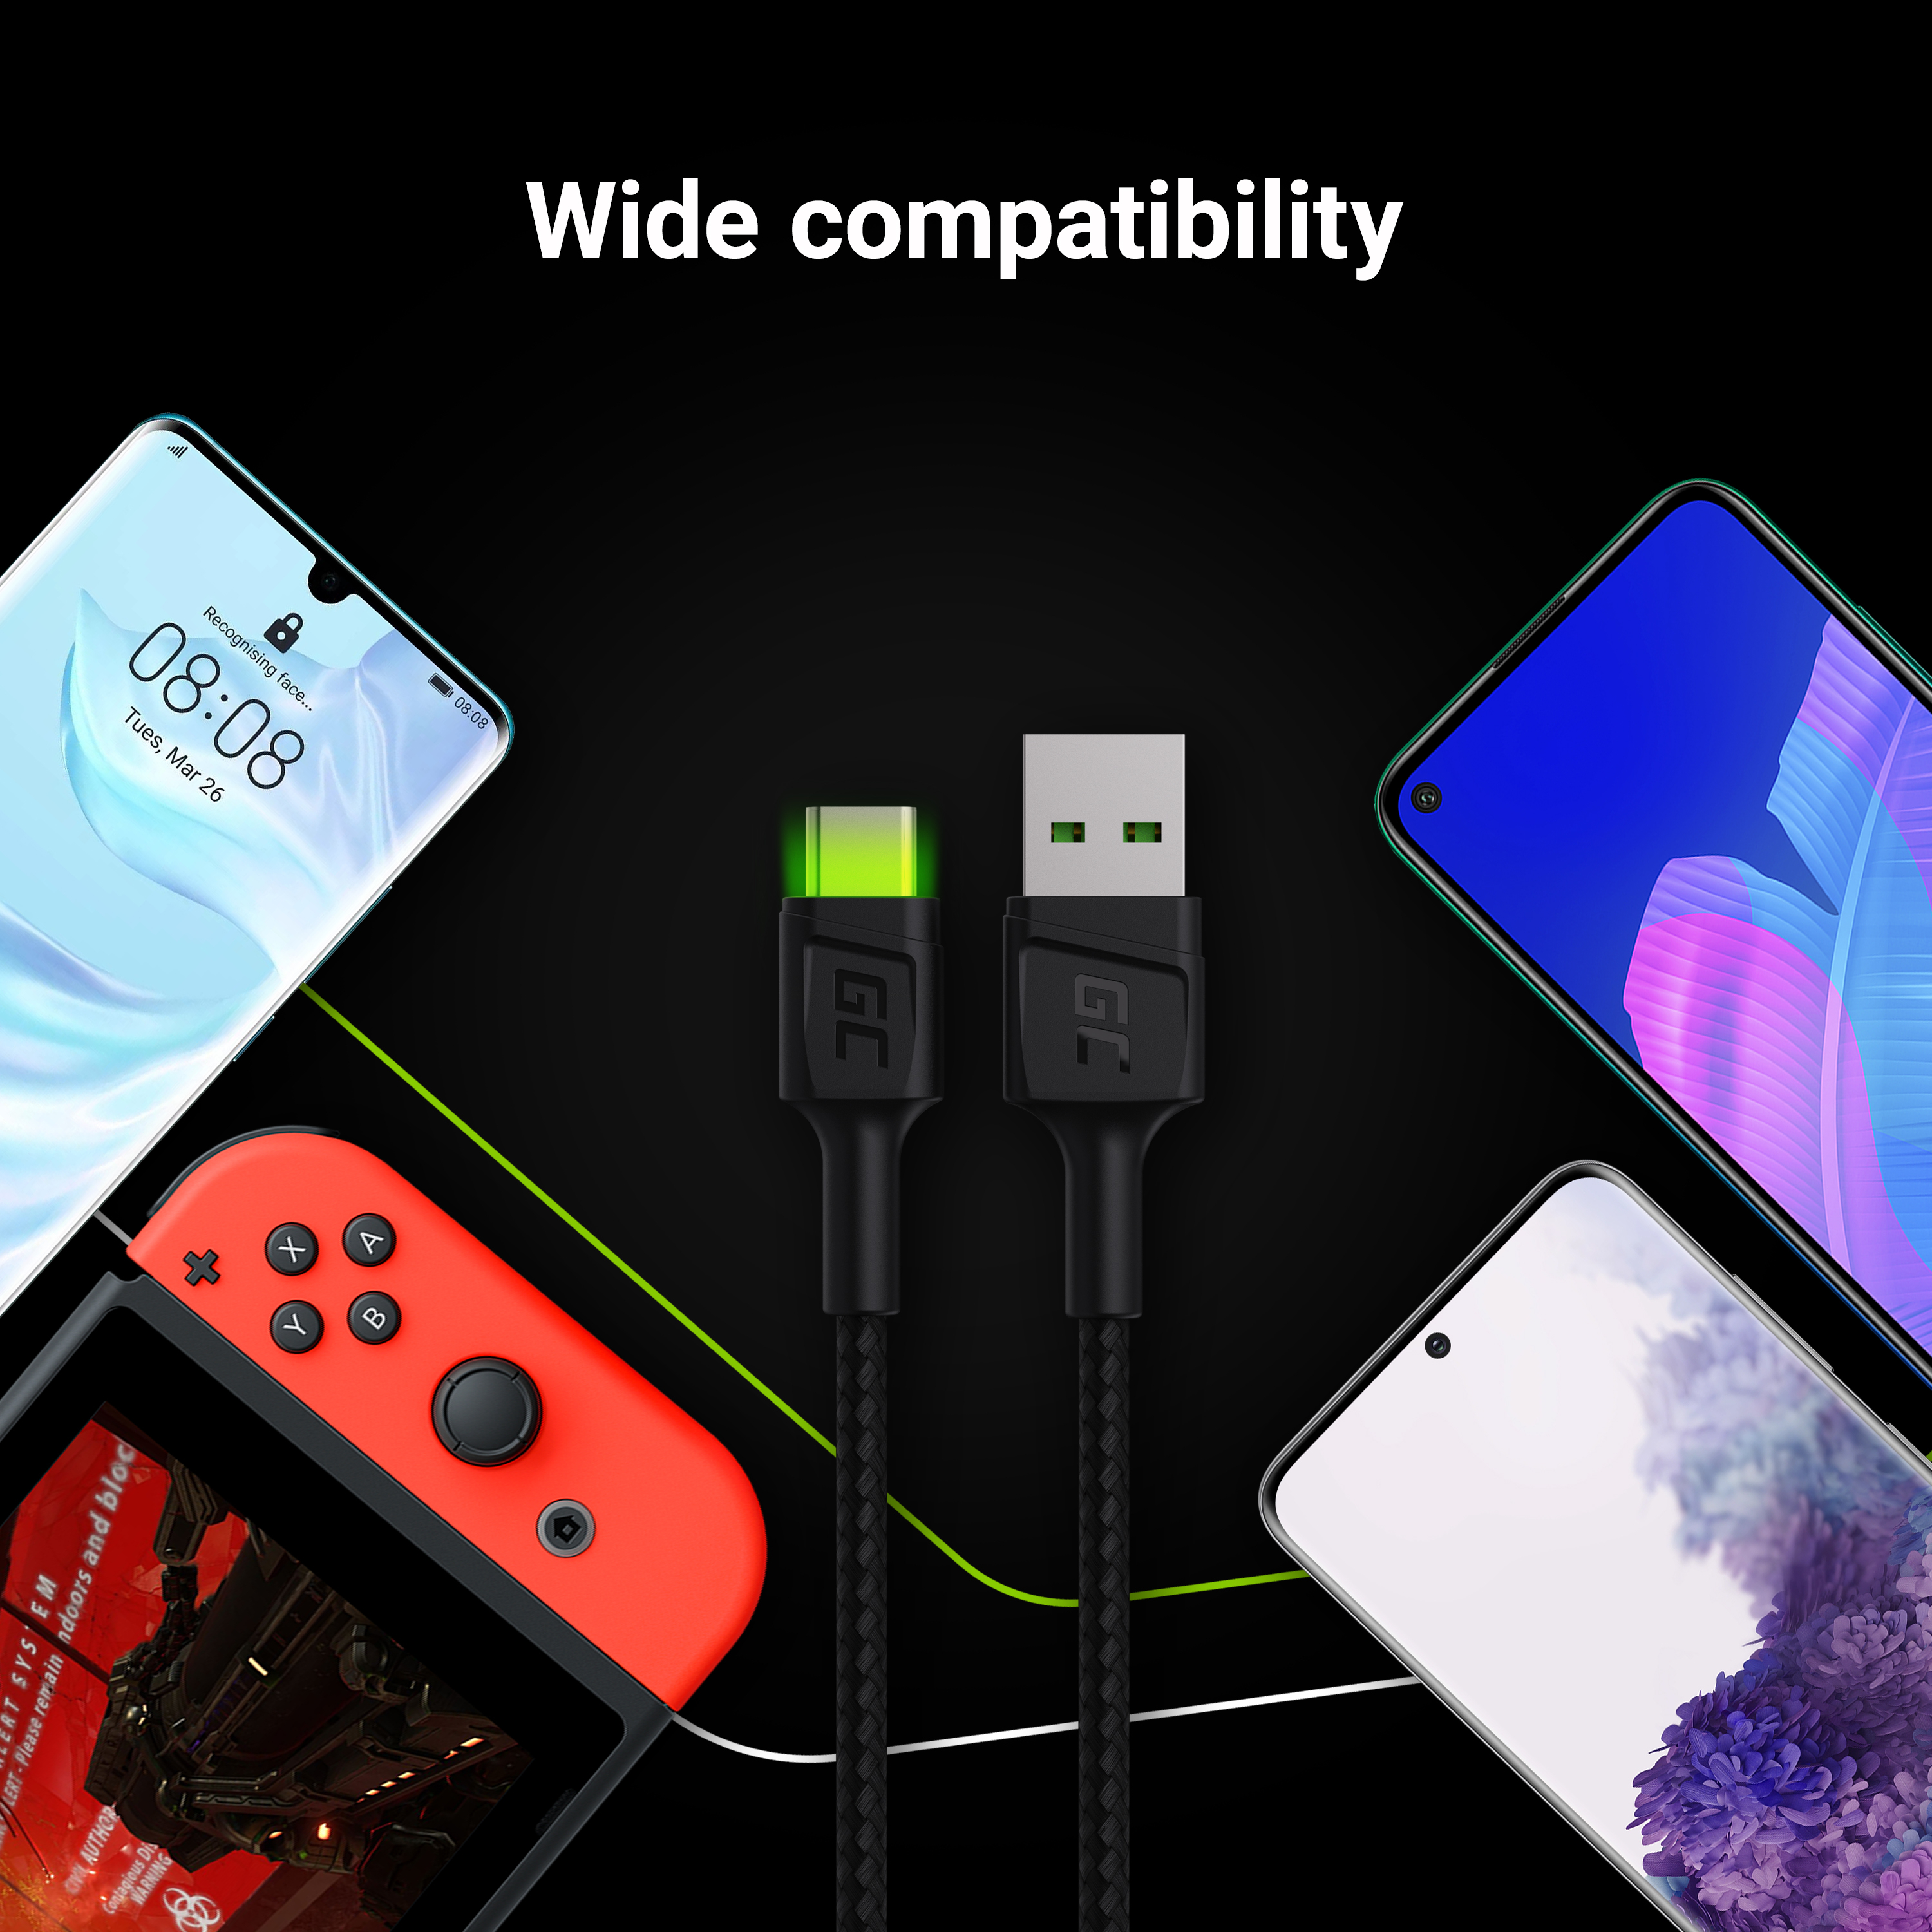 Cable Green Cell Ray USB Cable - USB-C 120cm with green LED backlight and support fast charging Ultra Charge, QC 3.0